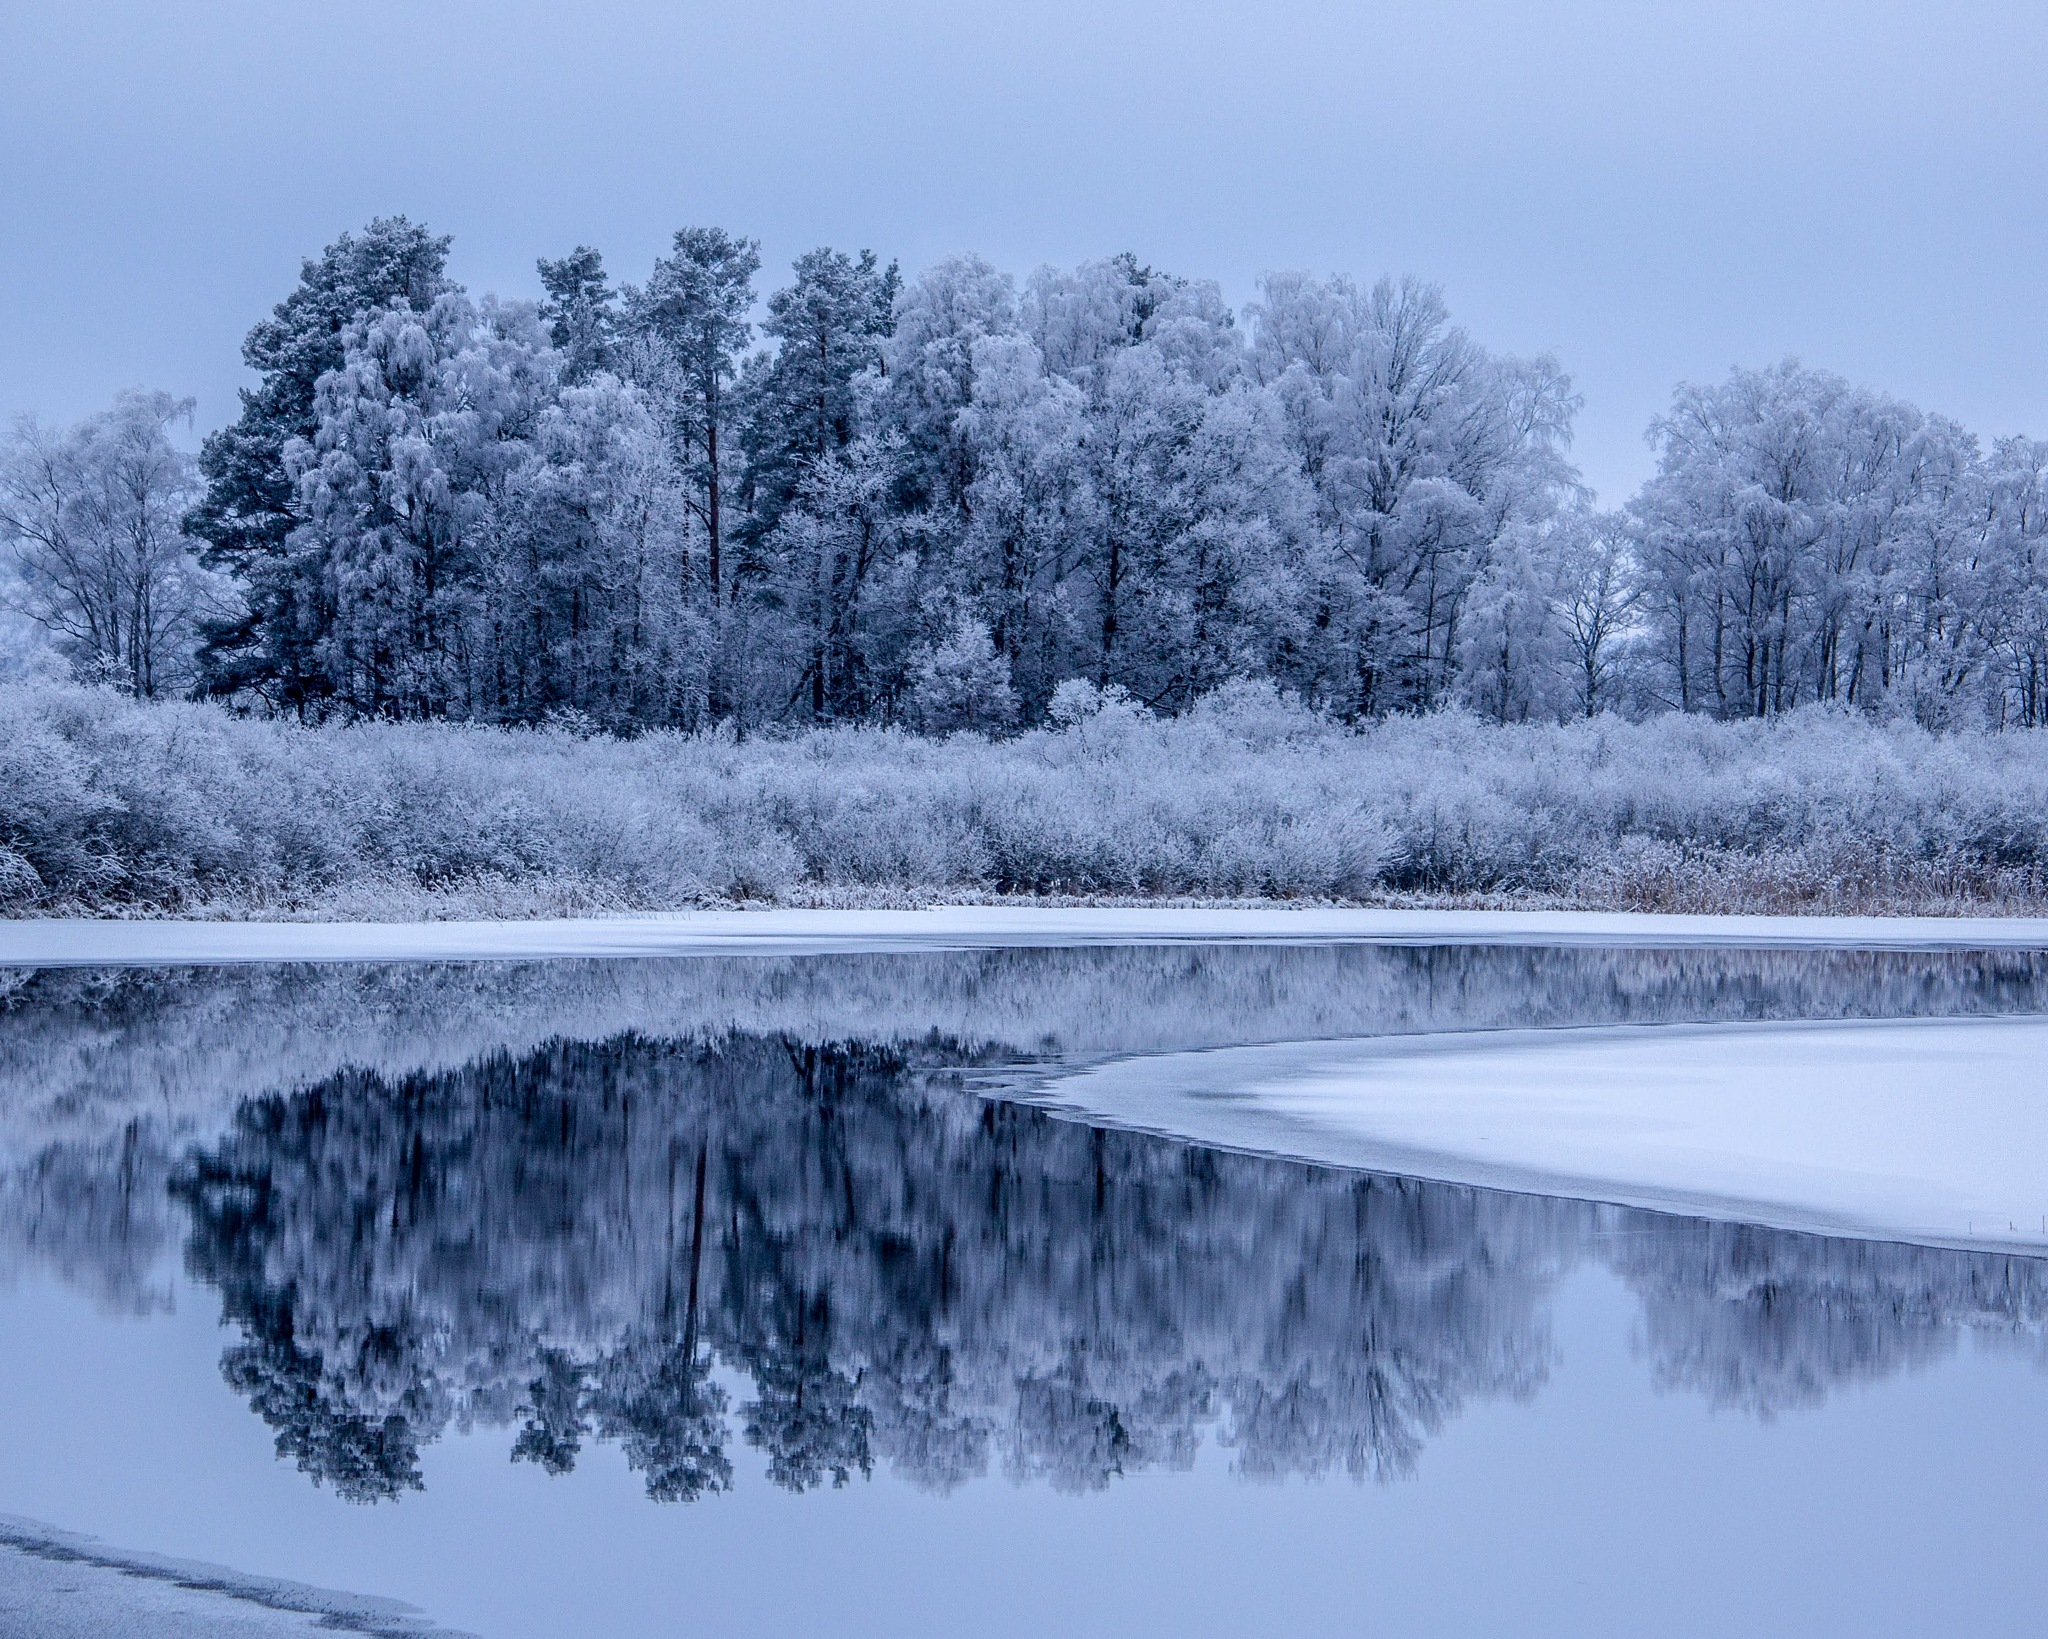 winter lake reflection by Andersson_photography86